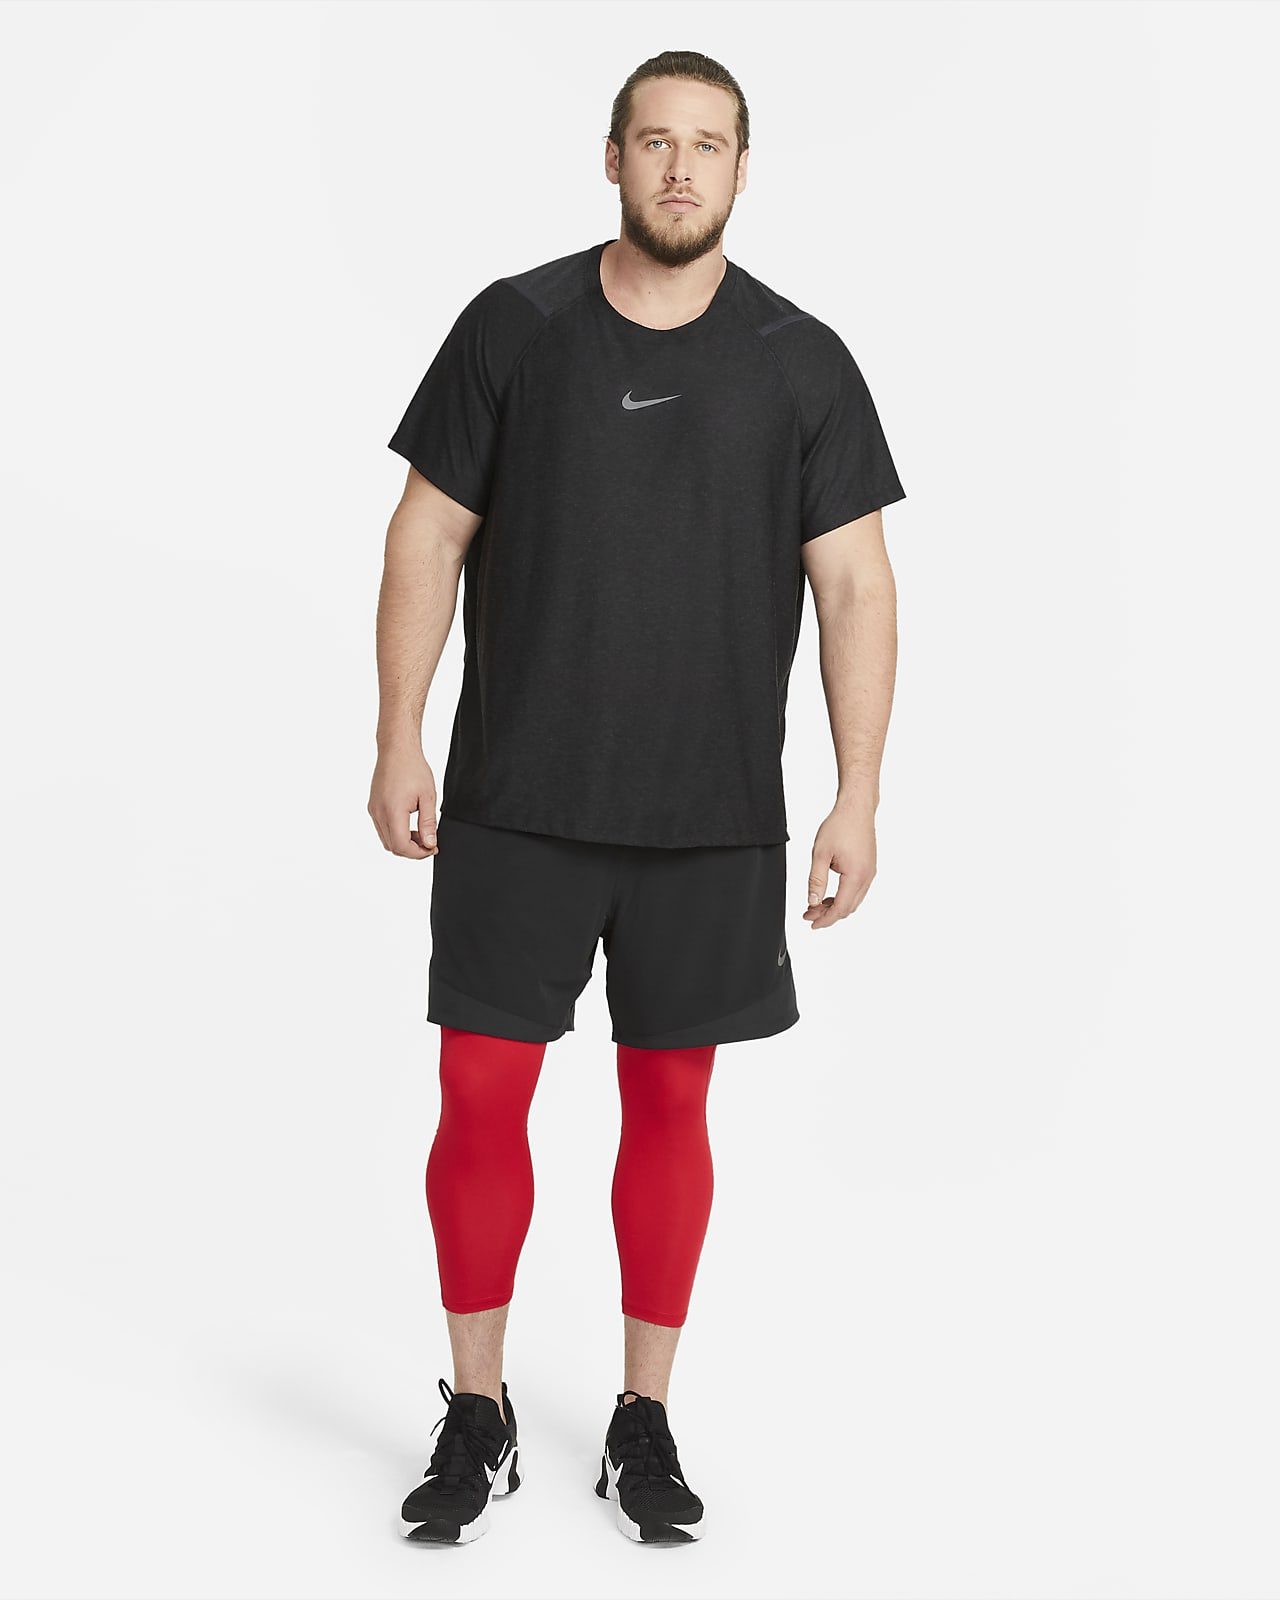 Men/'s Compression Base Layer Gym Sports Pants Leggings Tight Running Bottoms USA